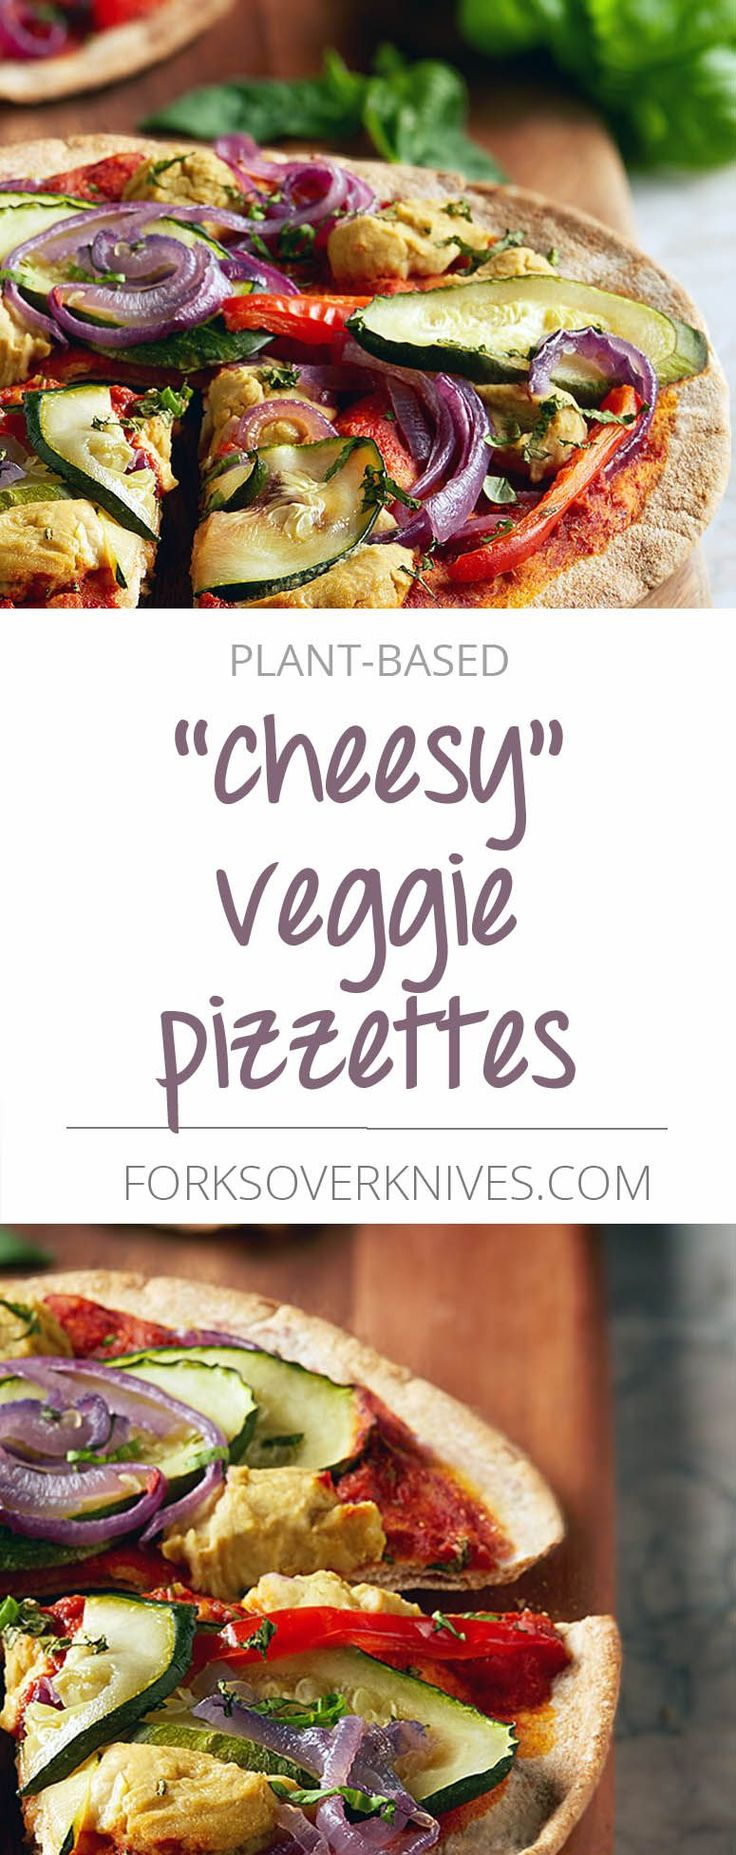 These mini pizzas are great for parties. Pita bread works well as a pizza crust because it cooks very quickly and comes in the perfect size for making individual pizzas or appetizer-size slices. The cheesy bean spread is a good...  Read more